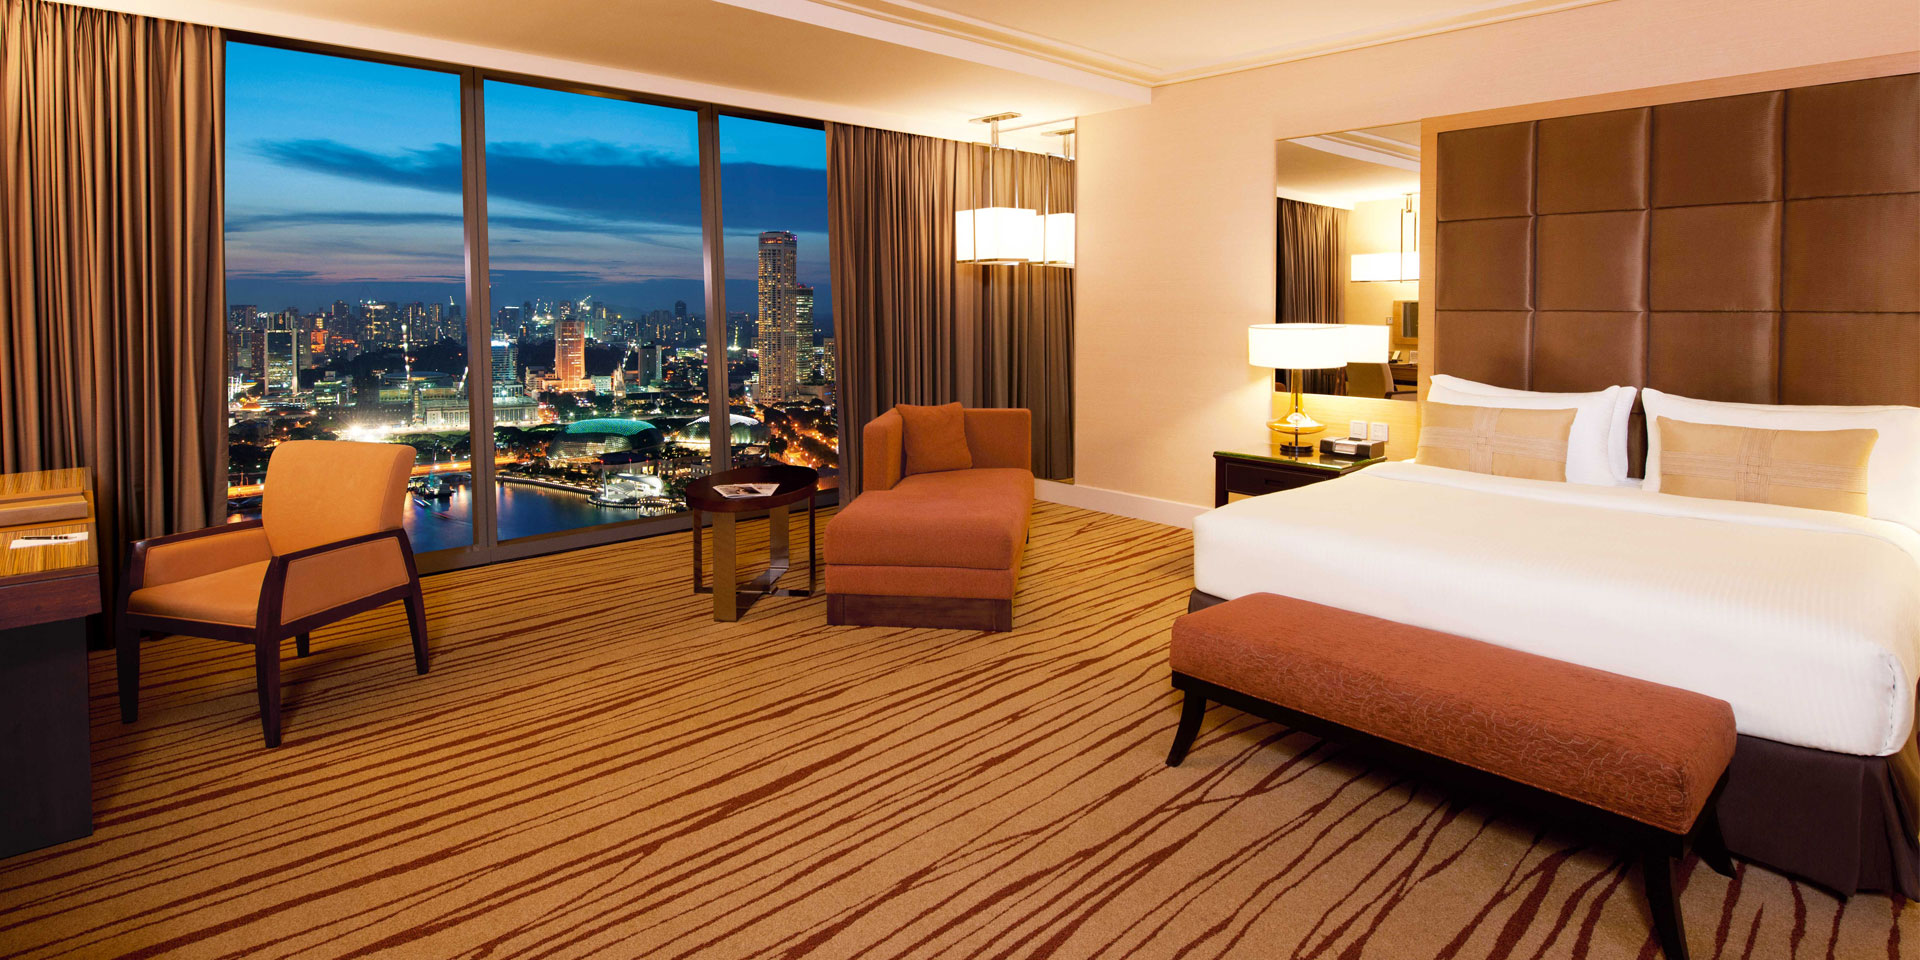 Grand Club Room at Marina Bay Sands with King Bed and City View